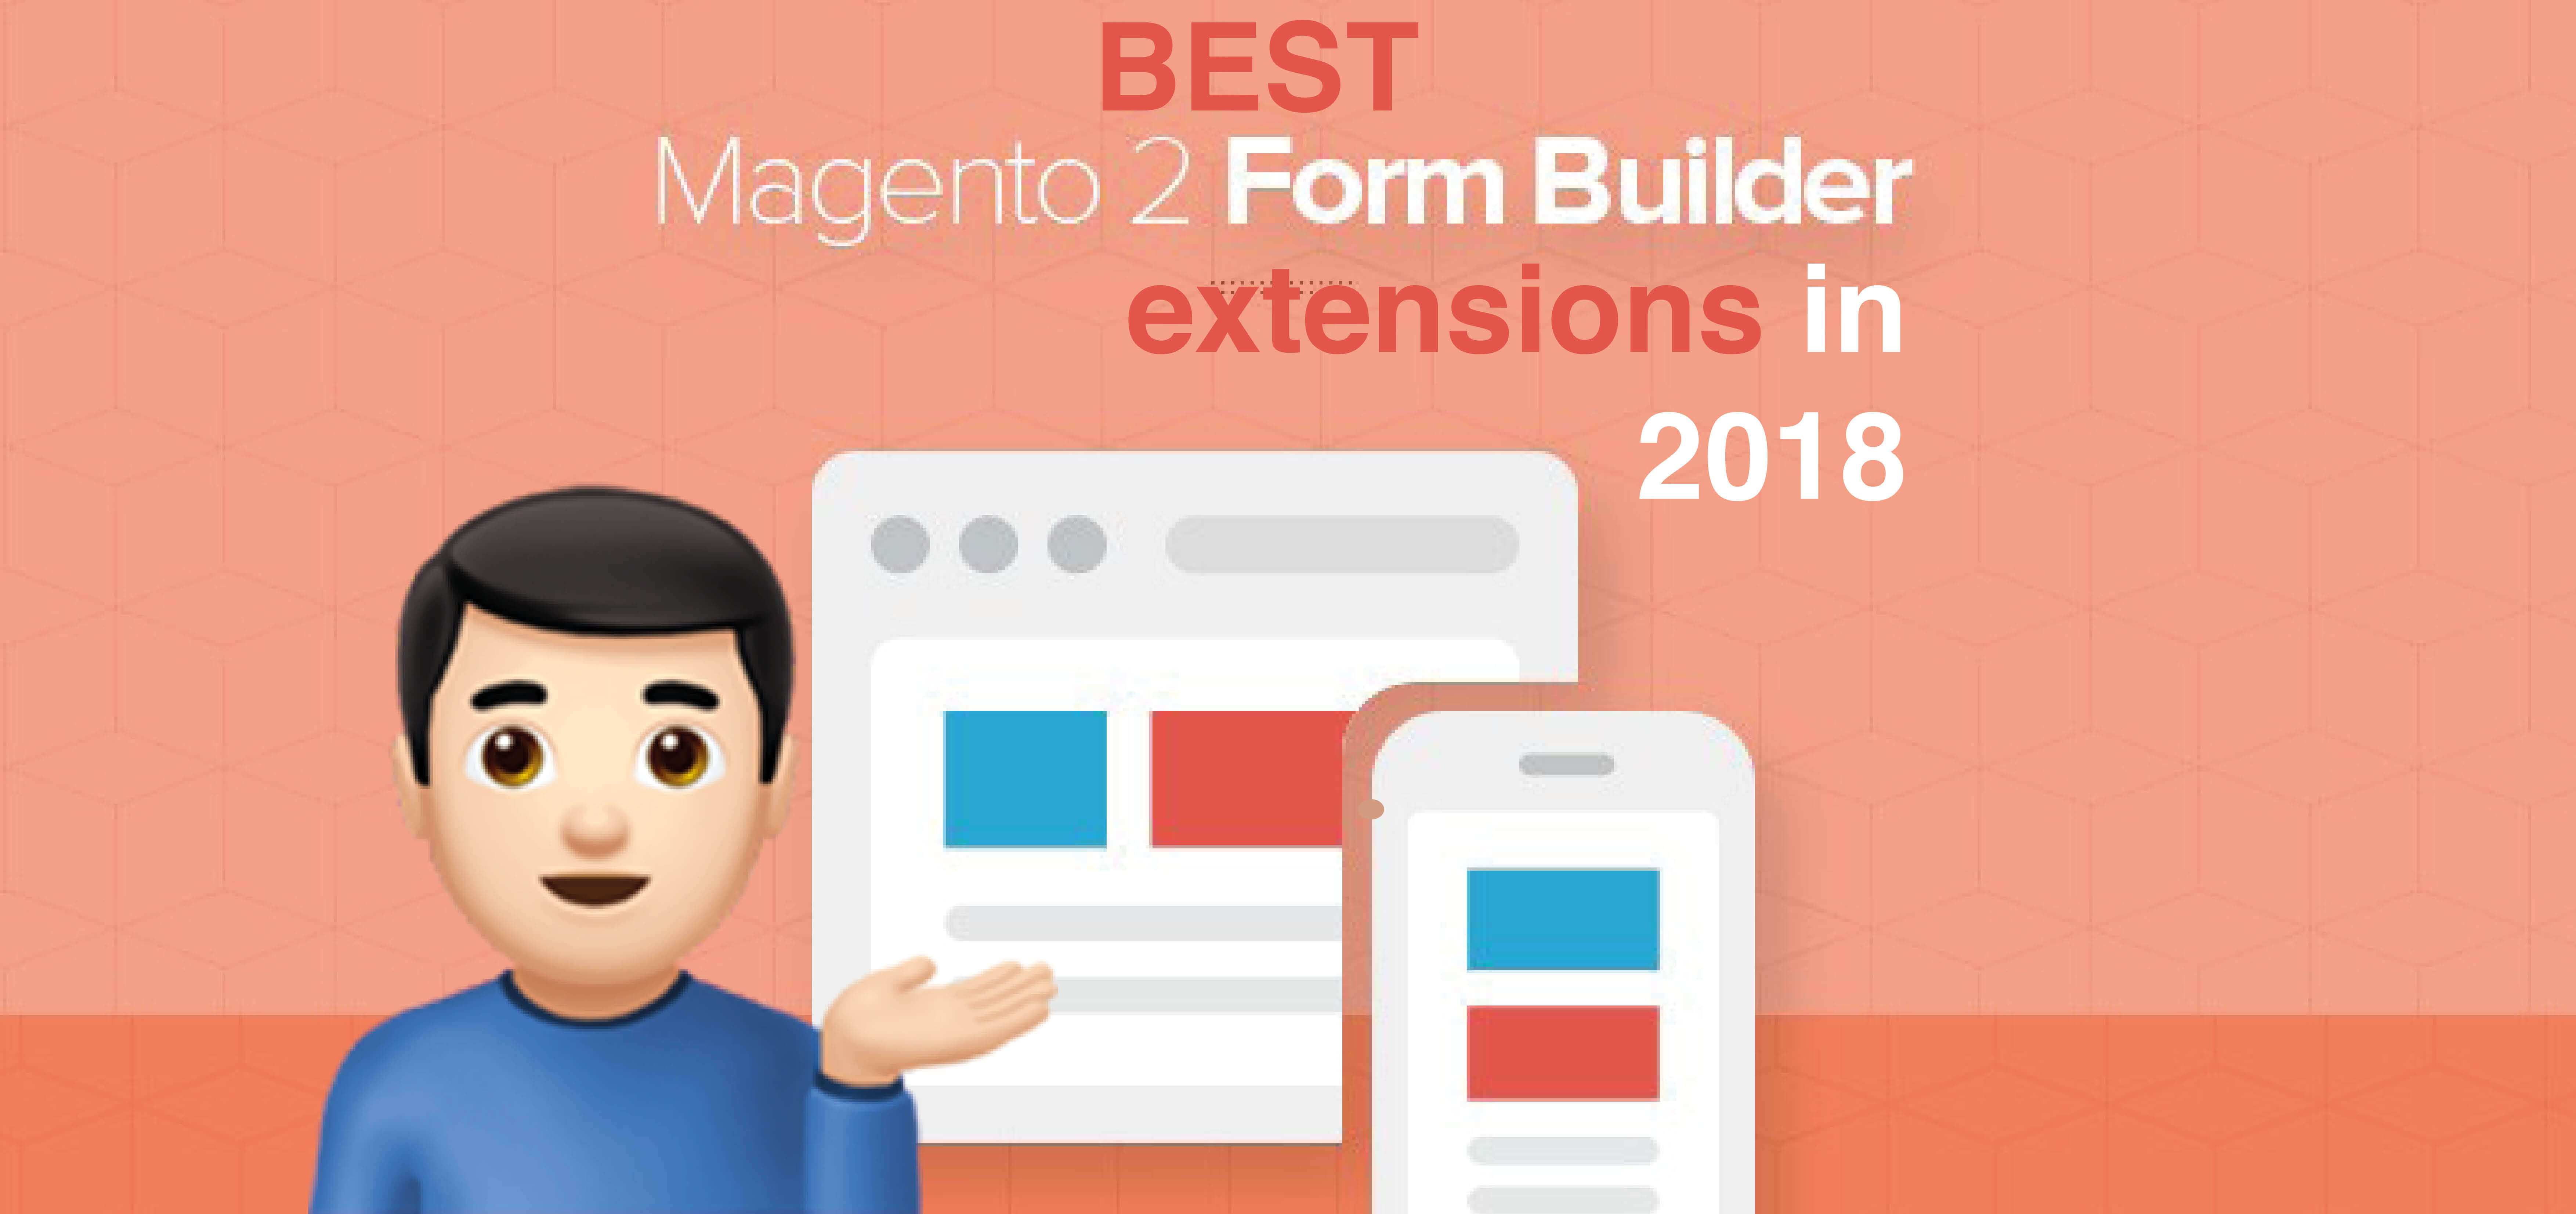 6 Best Form Builder Extensions for Magento 2 in 2018